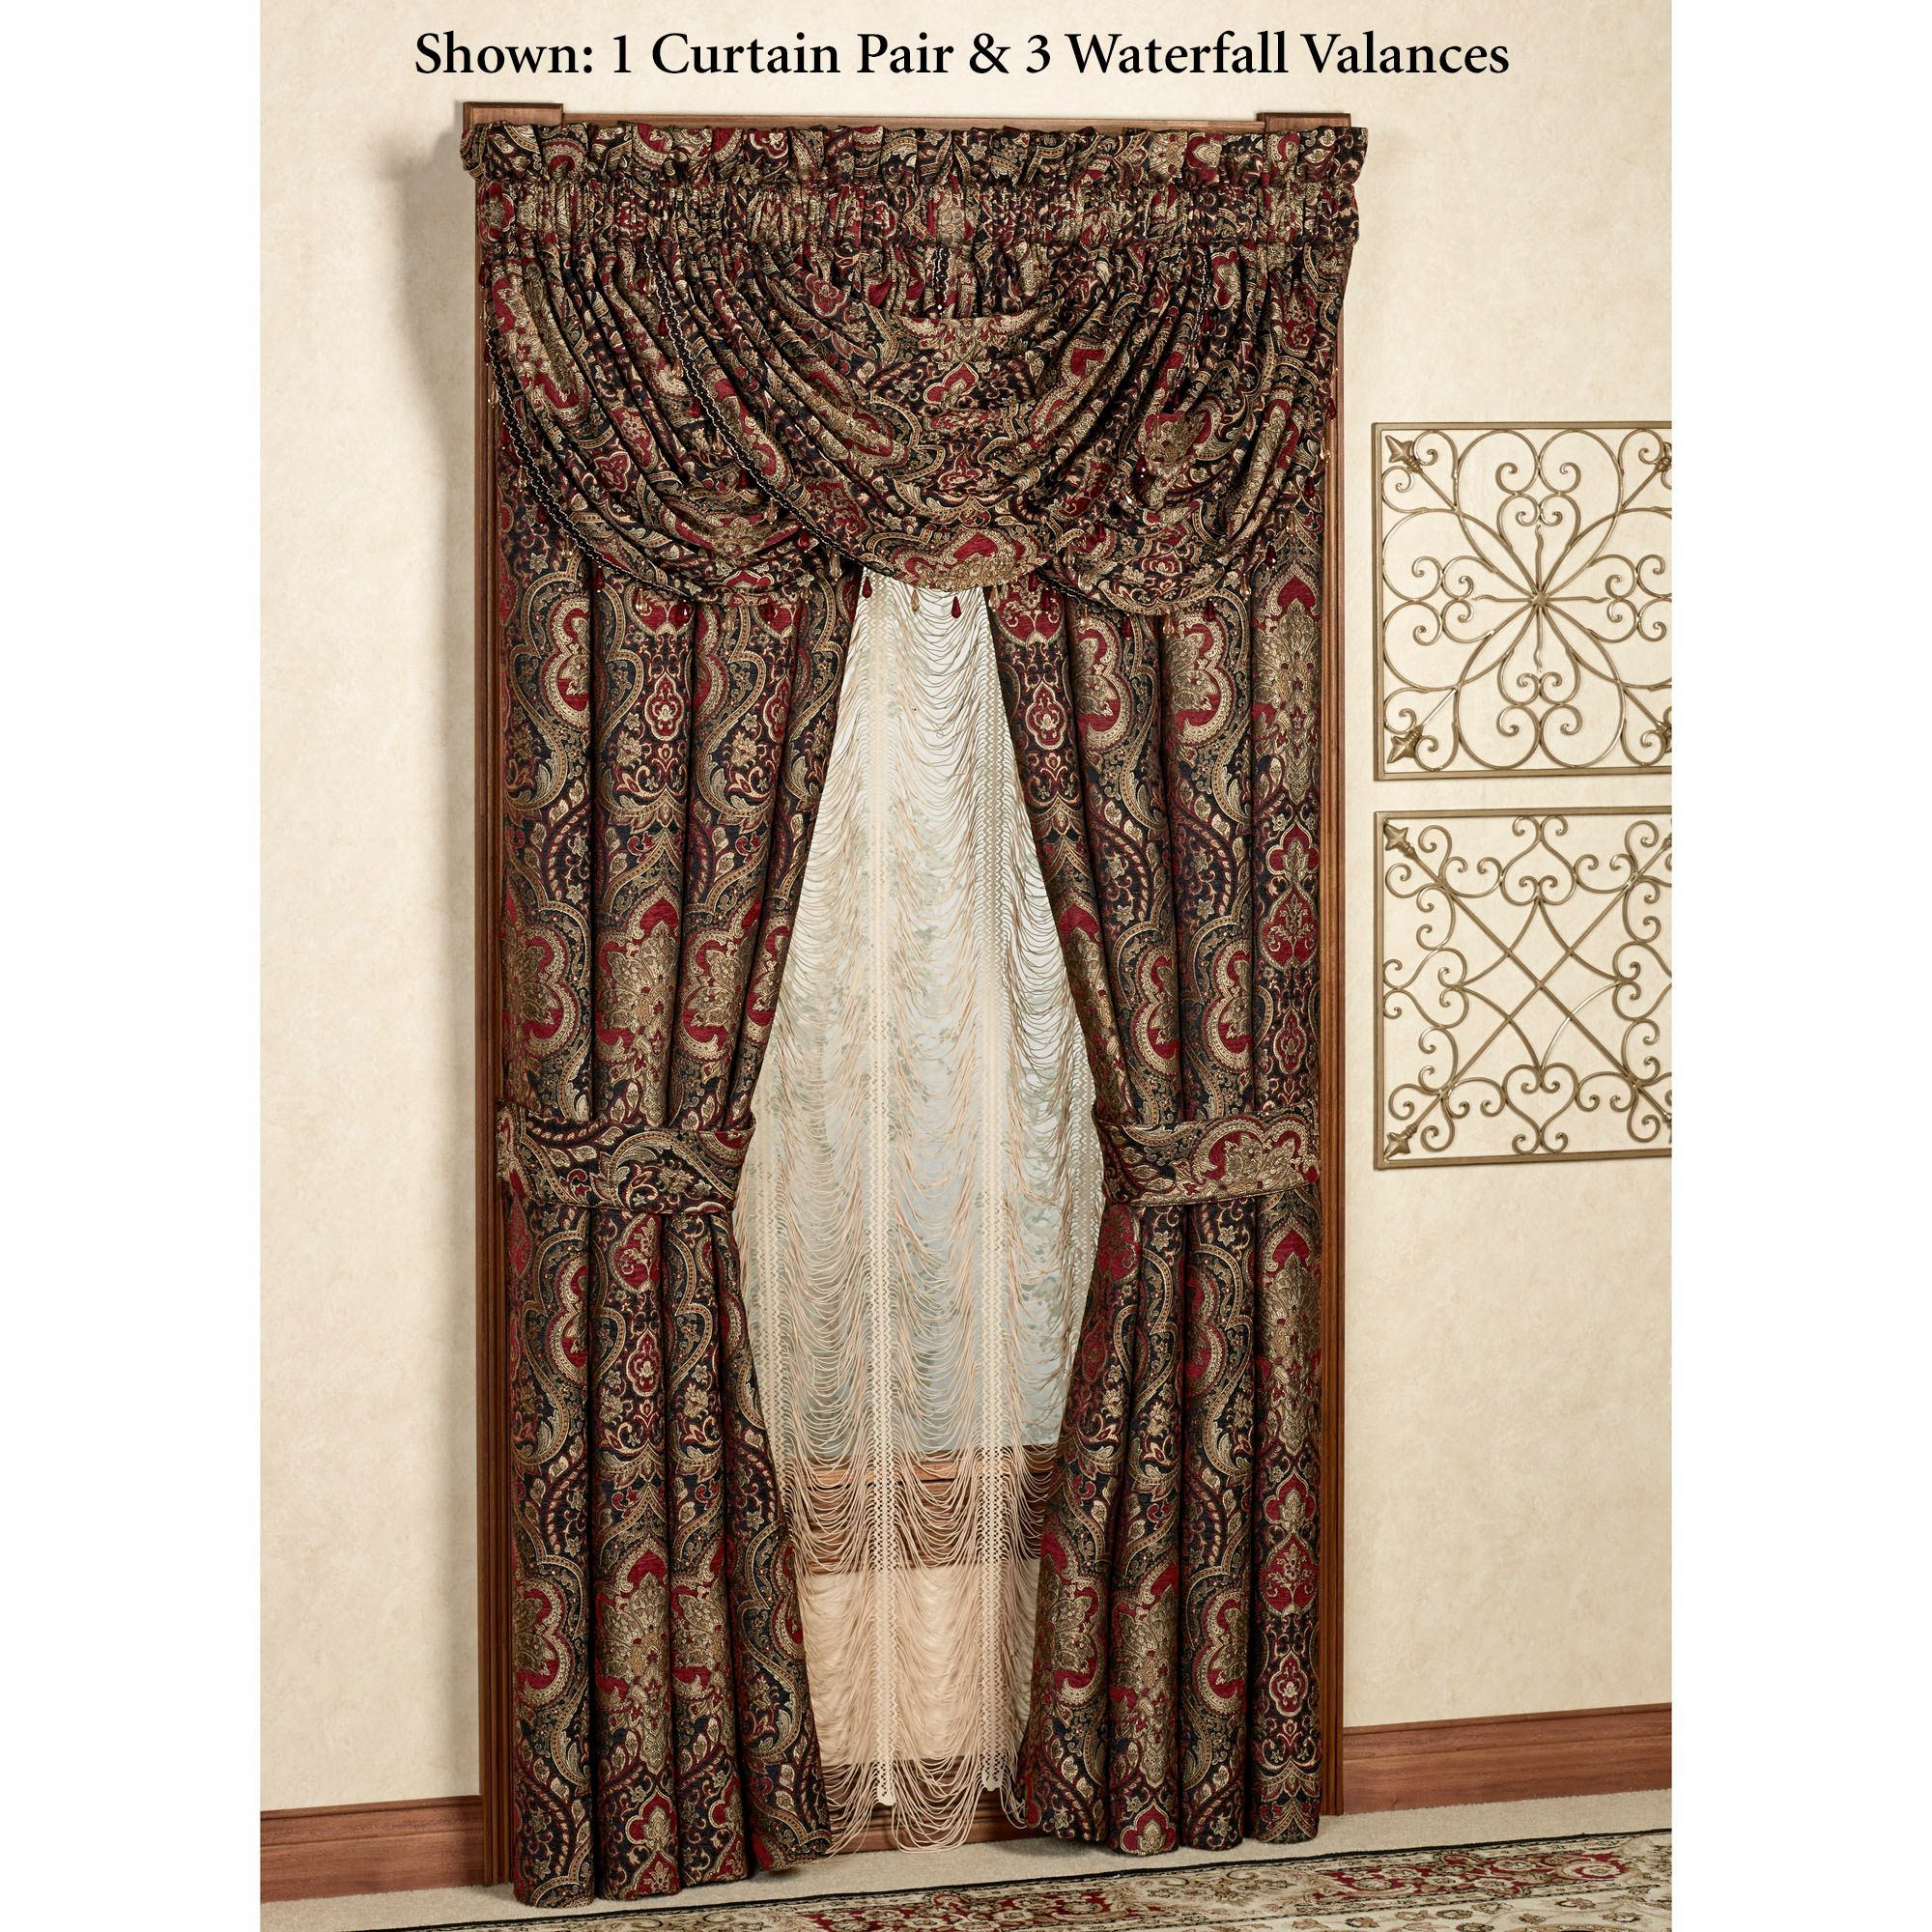 window scroll curtain tailored queen by sand p x curtains astoria treatment new expand pair to click j york